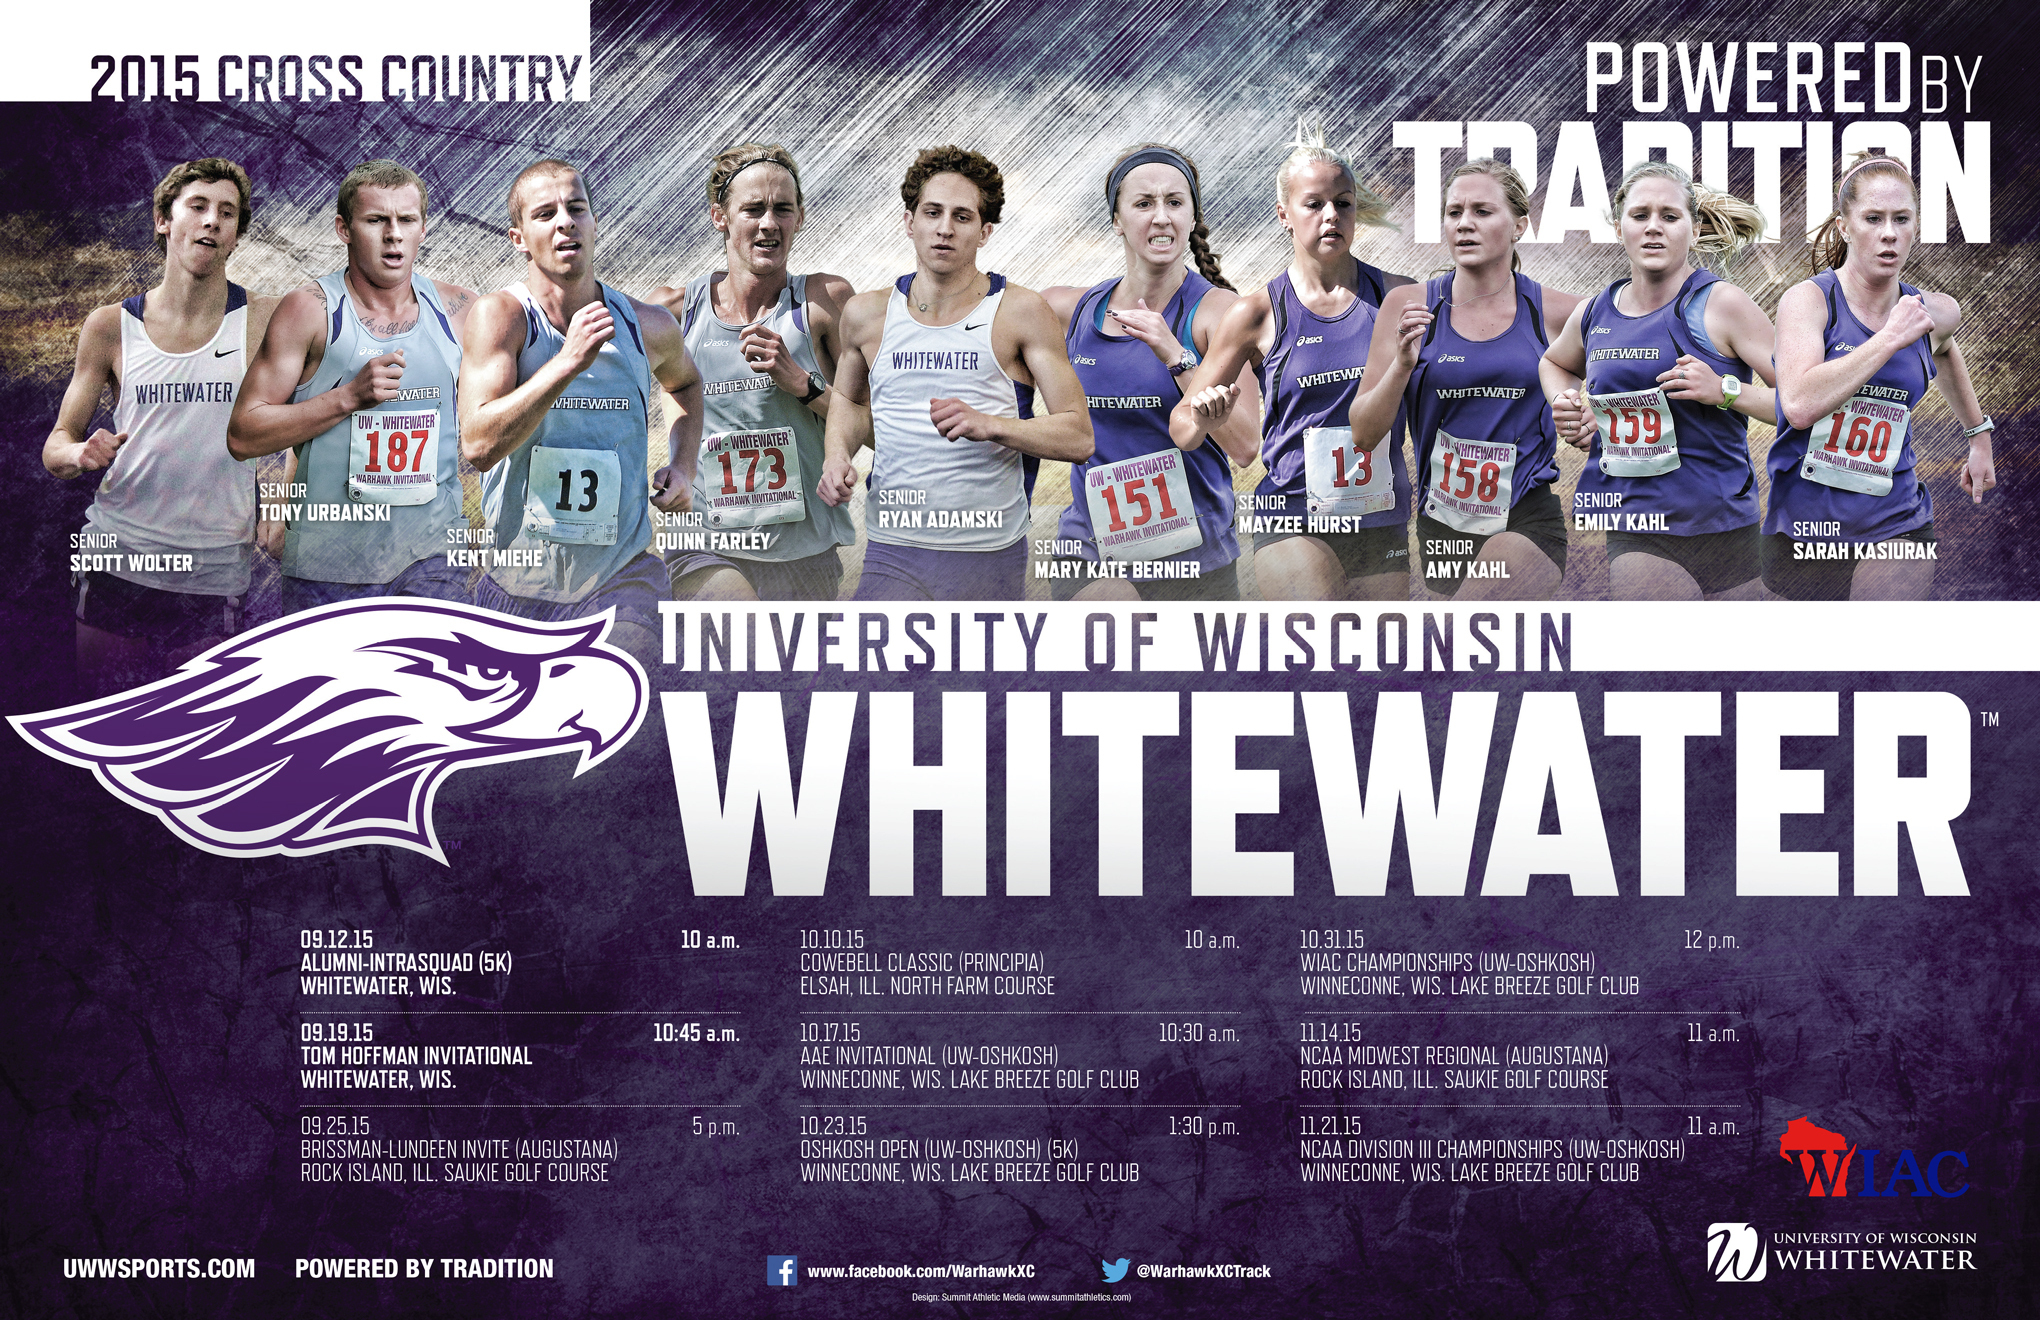 1442506495 2015 uw whitewater cross country poster final